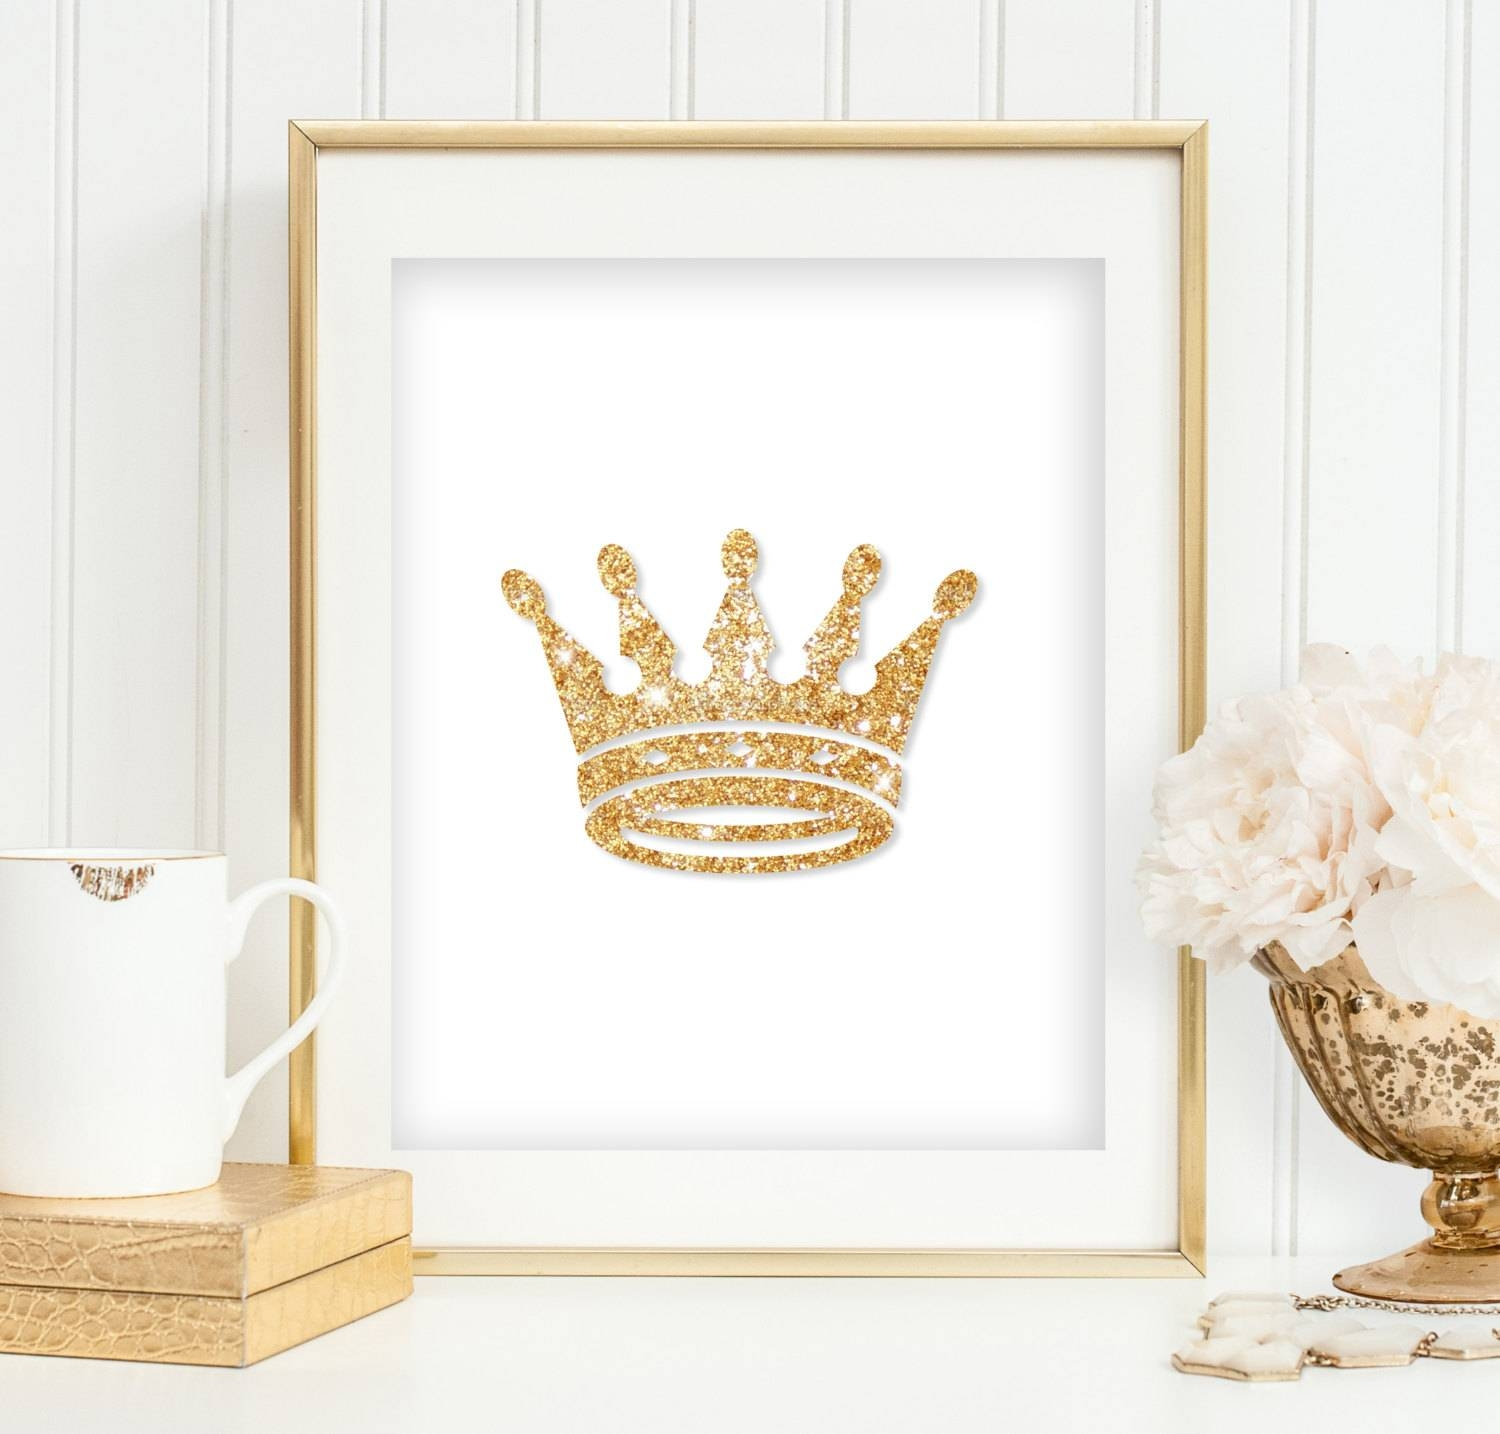 Gold Glitter Crown Print Girl's Bedroom Wall Art Princess Intended For 2018 Princess Crown Wall Art (View 14 of 25)